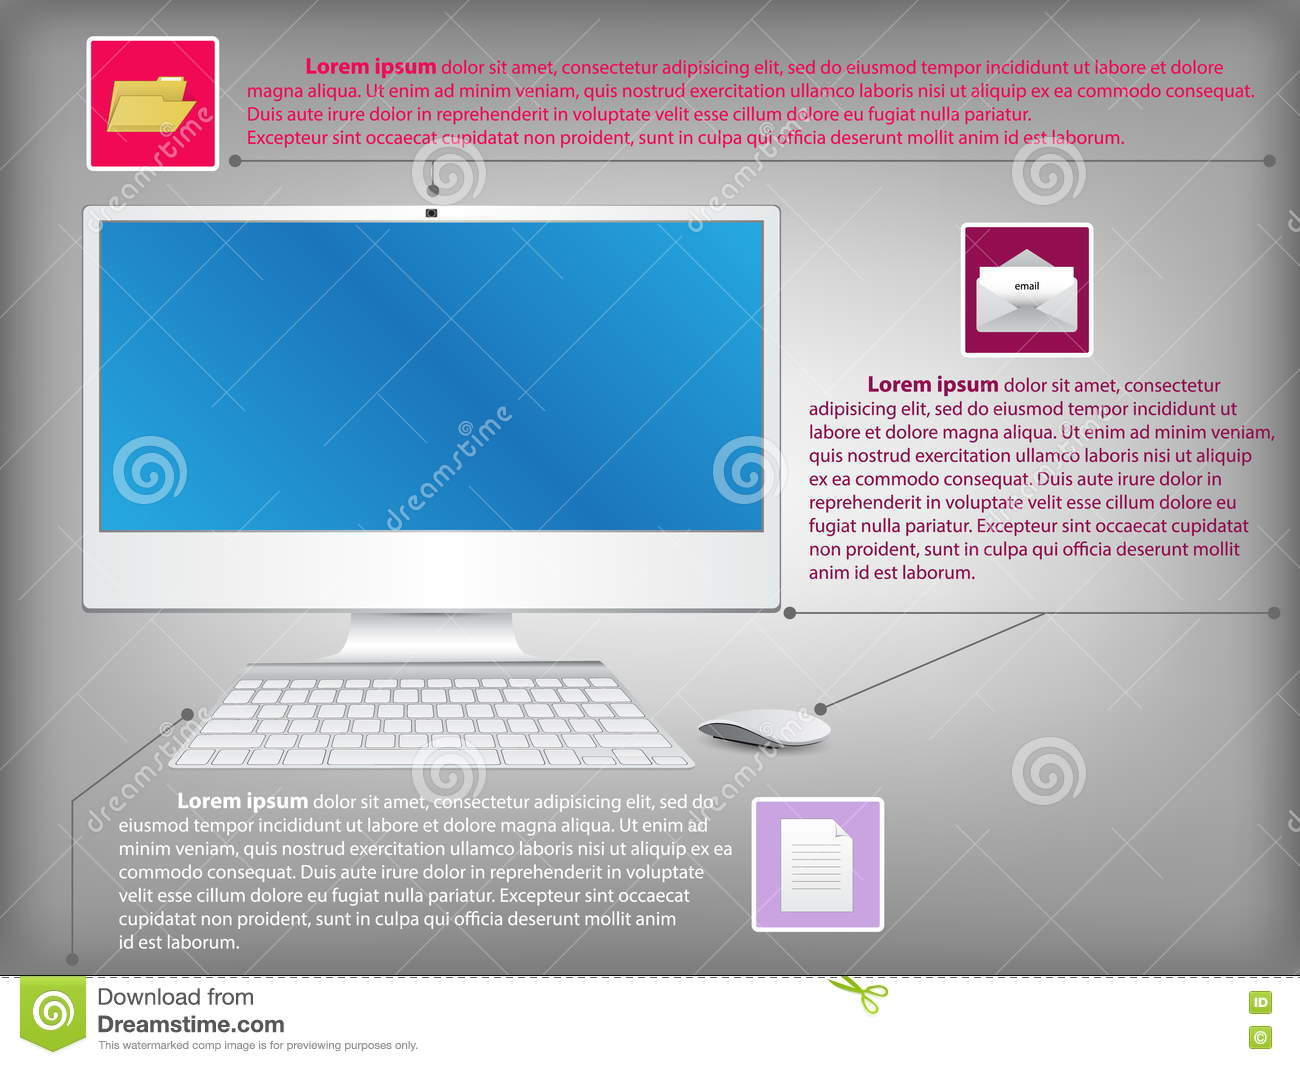 Desktop Computer Diagram Schematics Wiring Diagrams Infographic With Pc Stock Vector Rh Dreamstime Com Power Supply Circuit